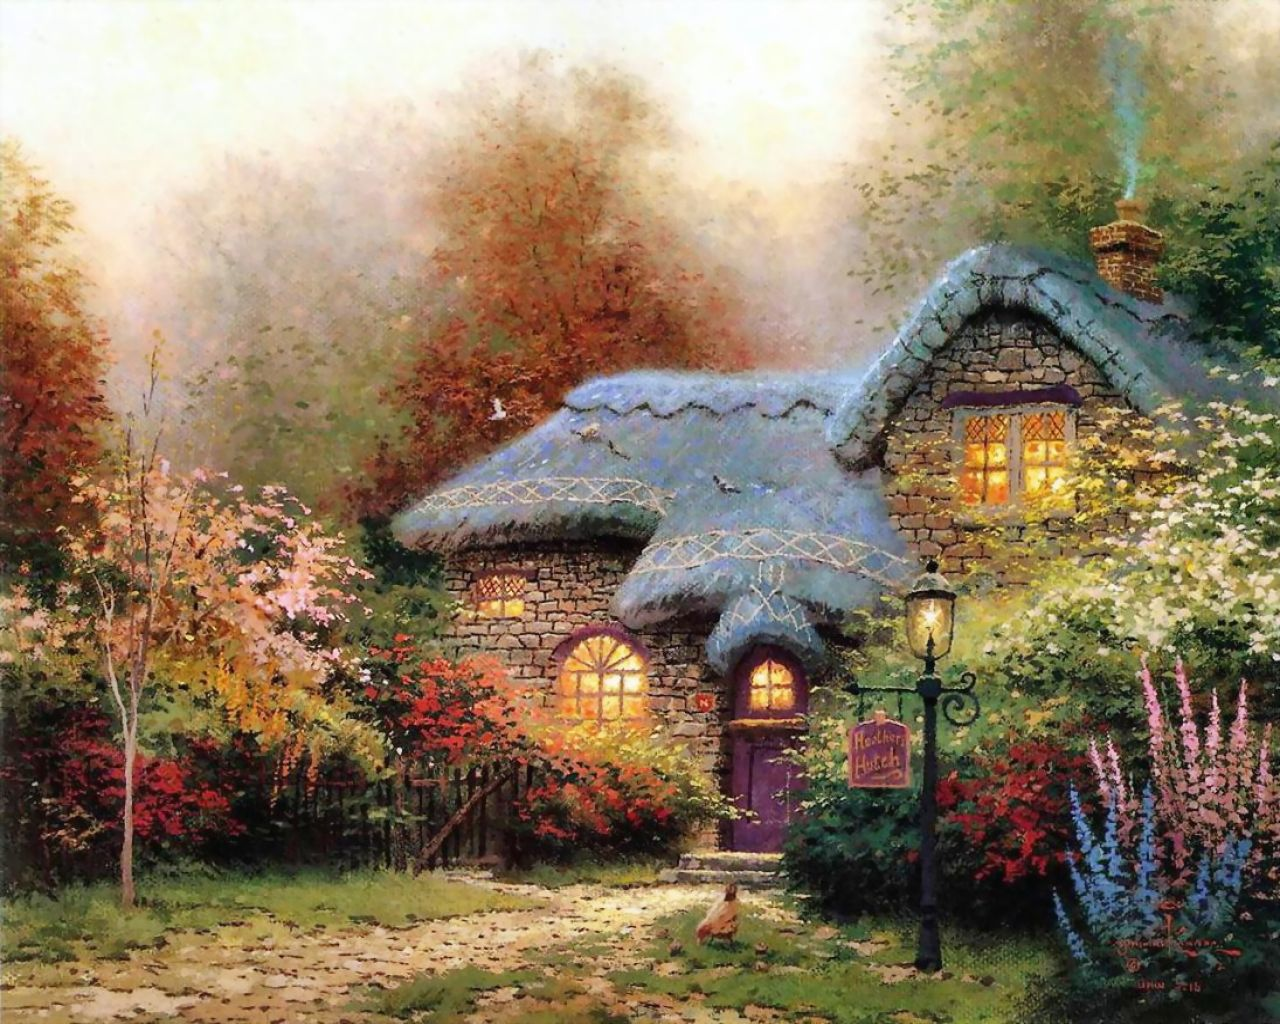 Home Living: Cottages of Love - A Tribute to Thomas Kinkade: homeliving.blogspot.com/2012/04/cottages-of-love.html